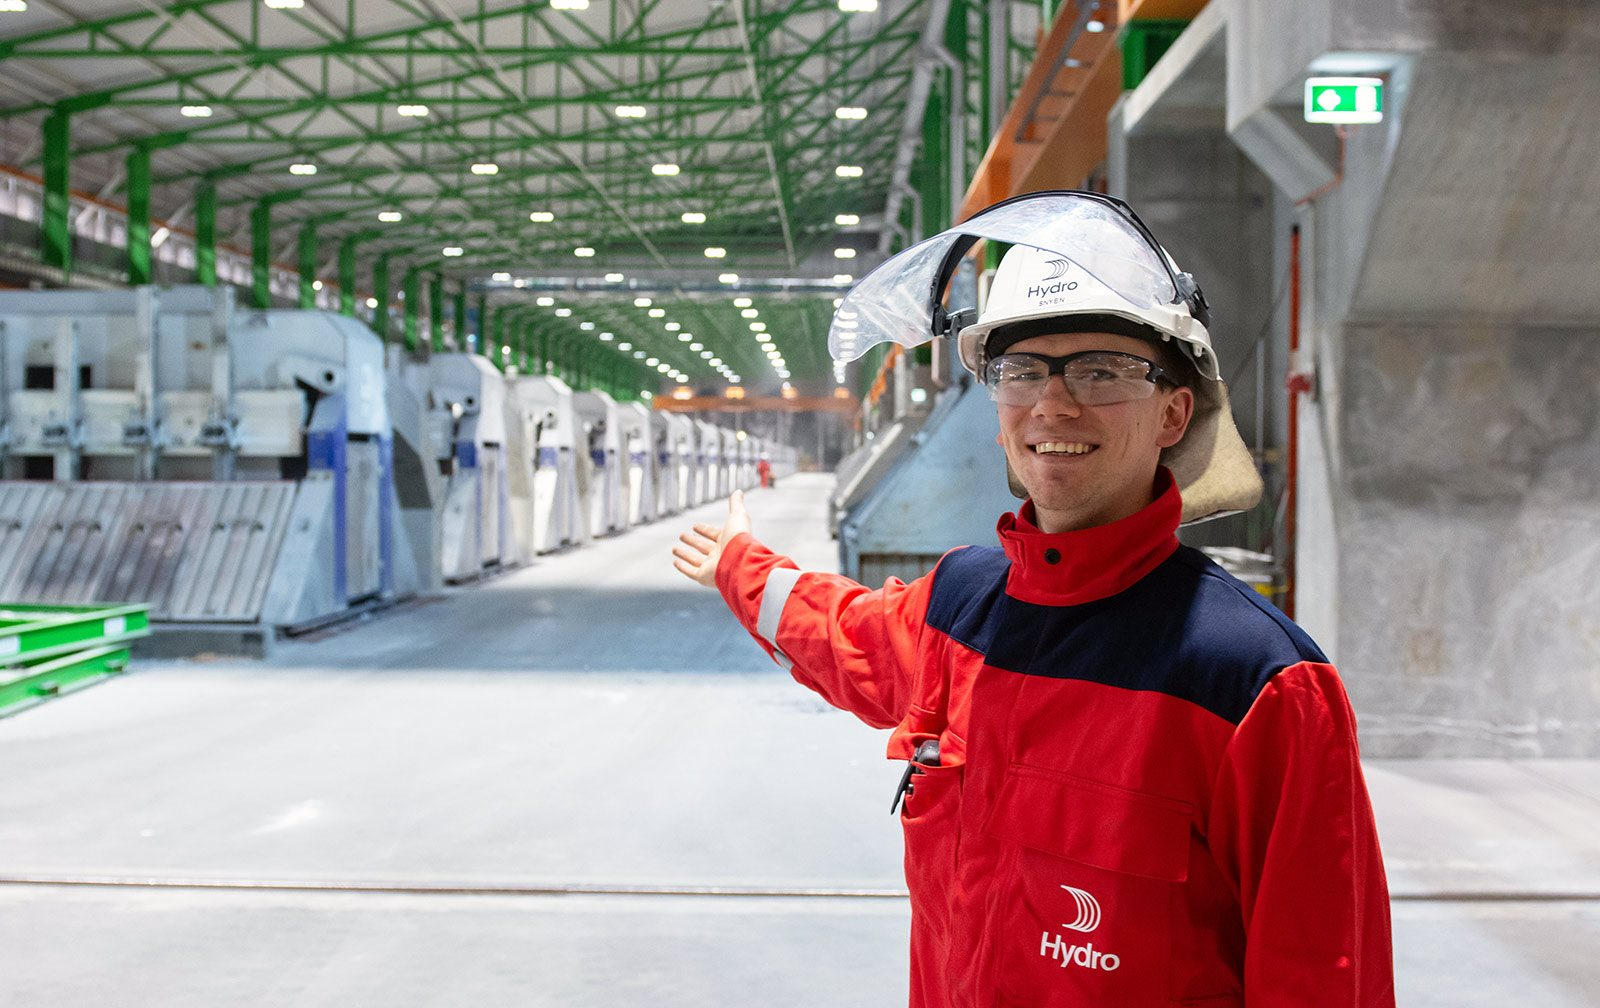 Hydro employee inside the Karmøy technology pilot